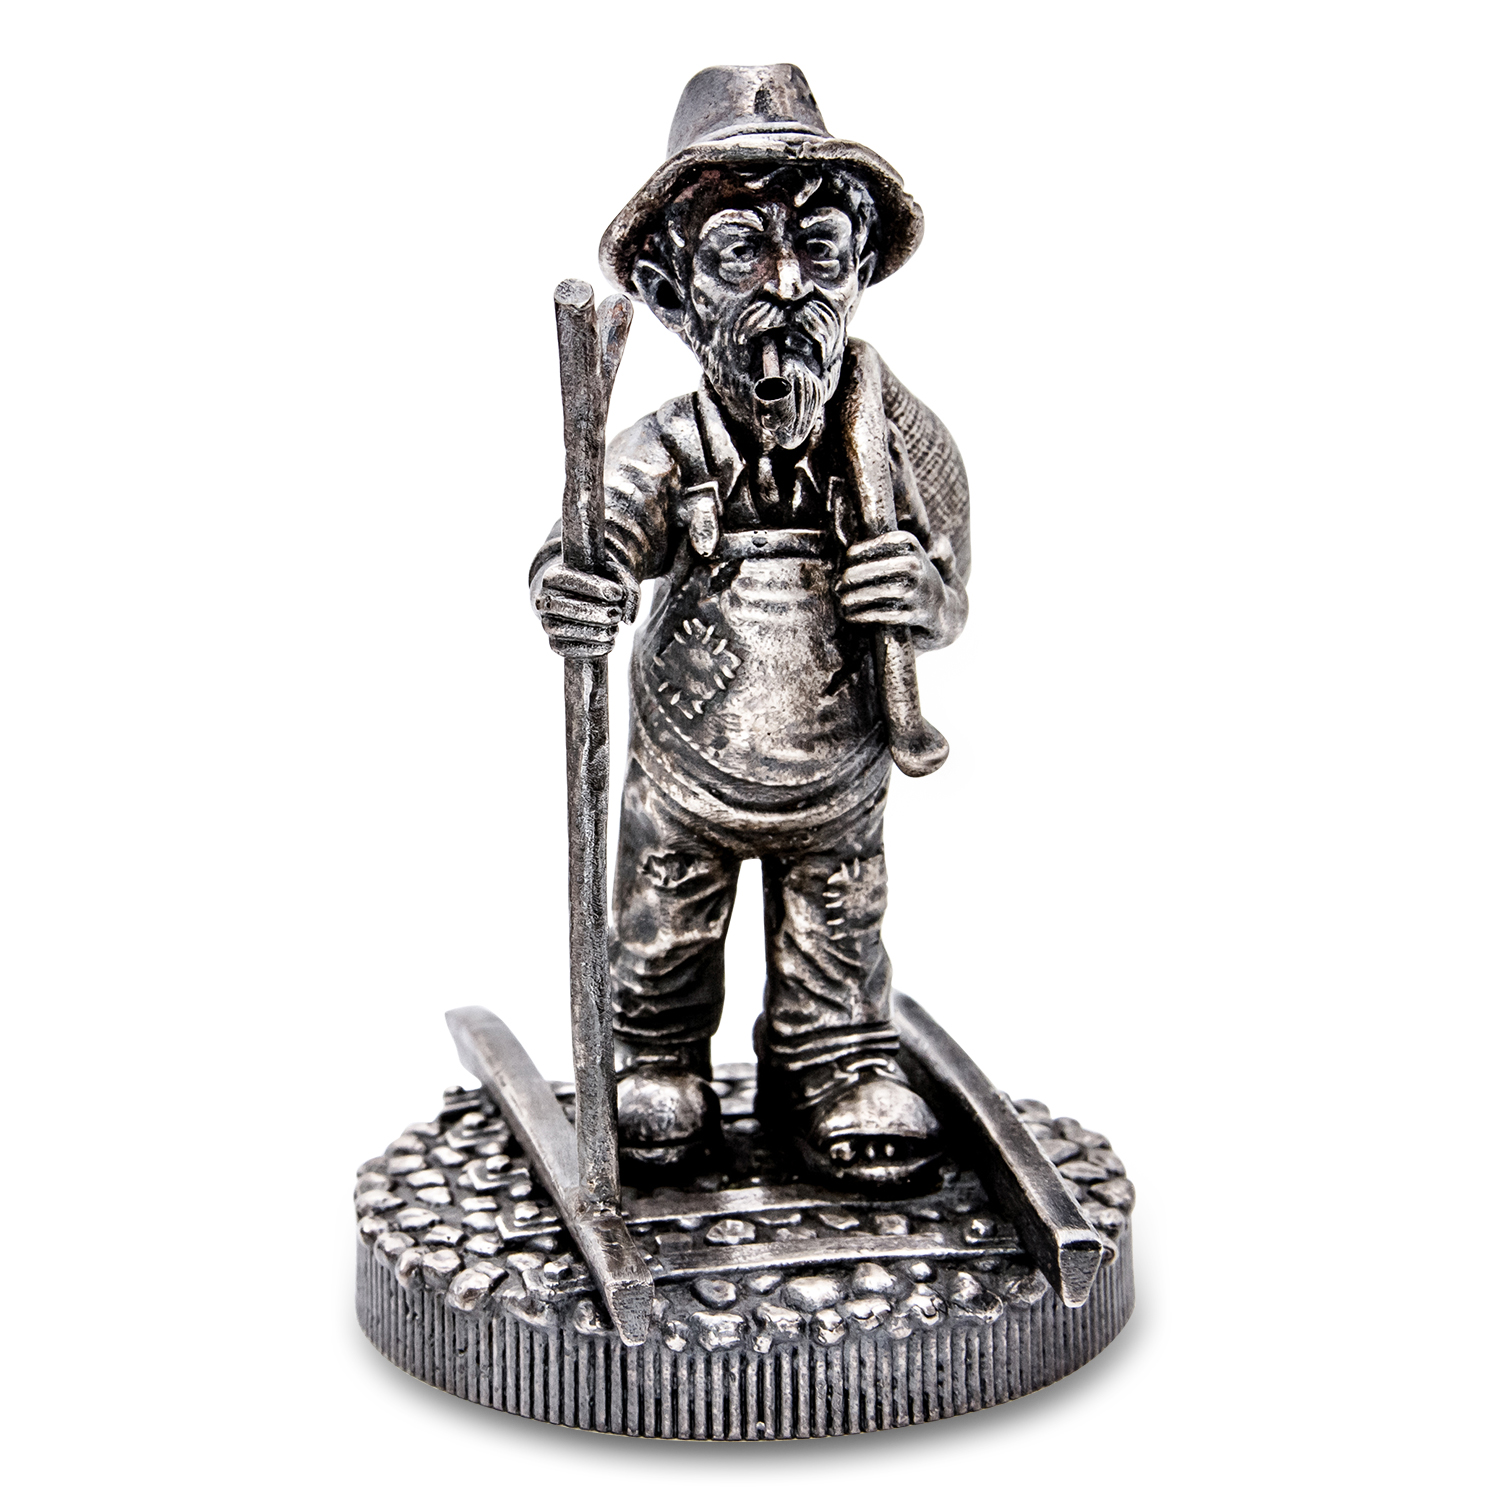 10 oz Silver Antique Statue - Hobo Nickel (The Train)